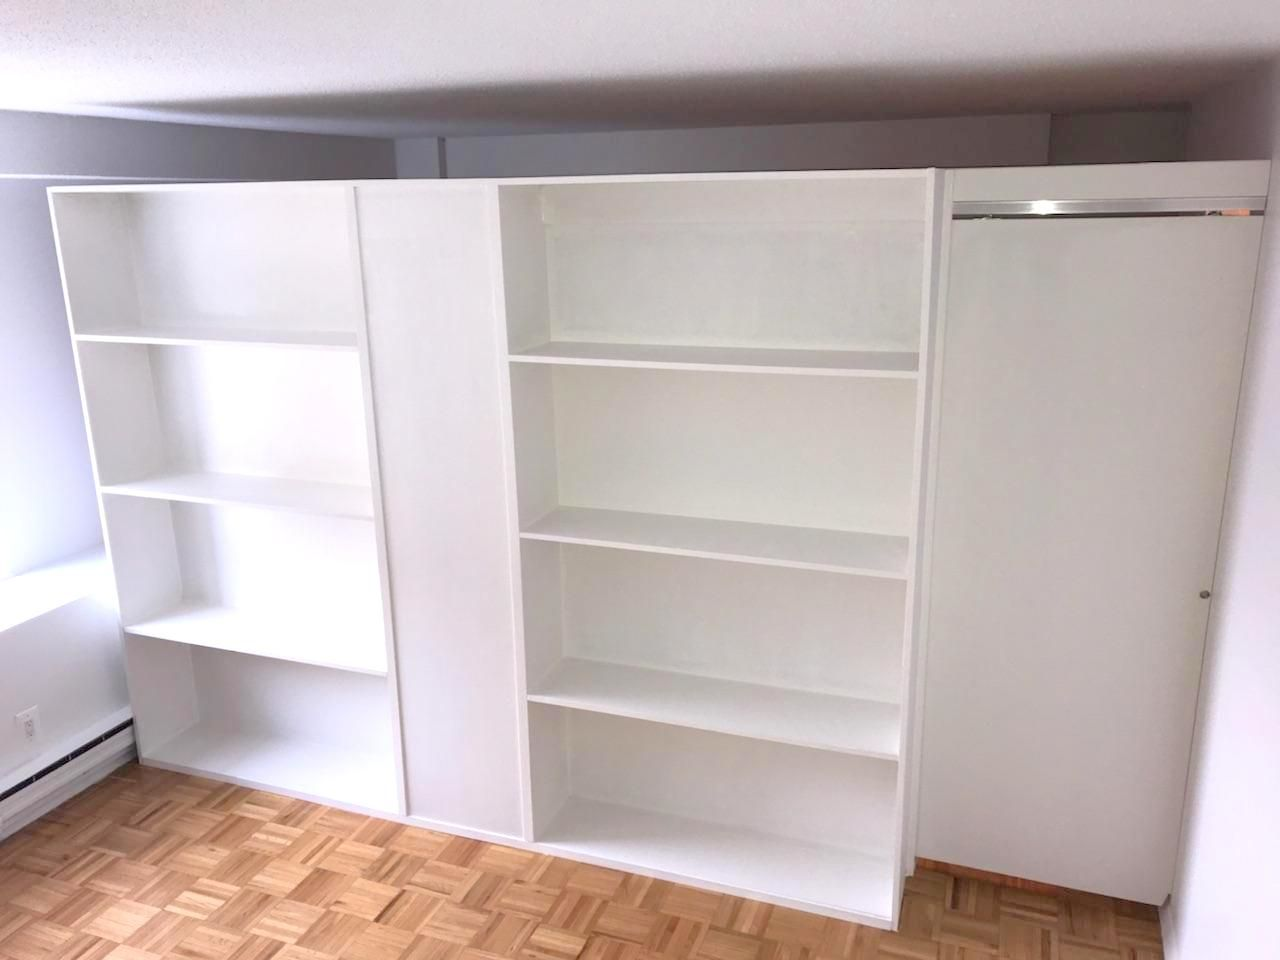 Freestanding Bookcase Wall With Sliding Door Call Us For All Your Custom Room Partition And Storage Inquiries 646 837 7300